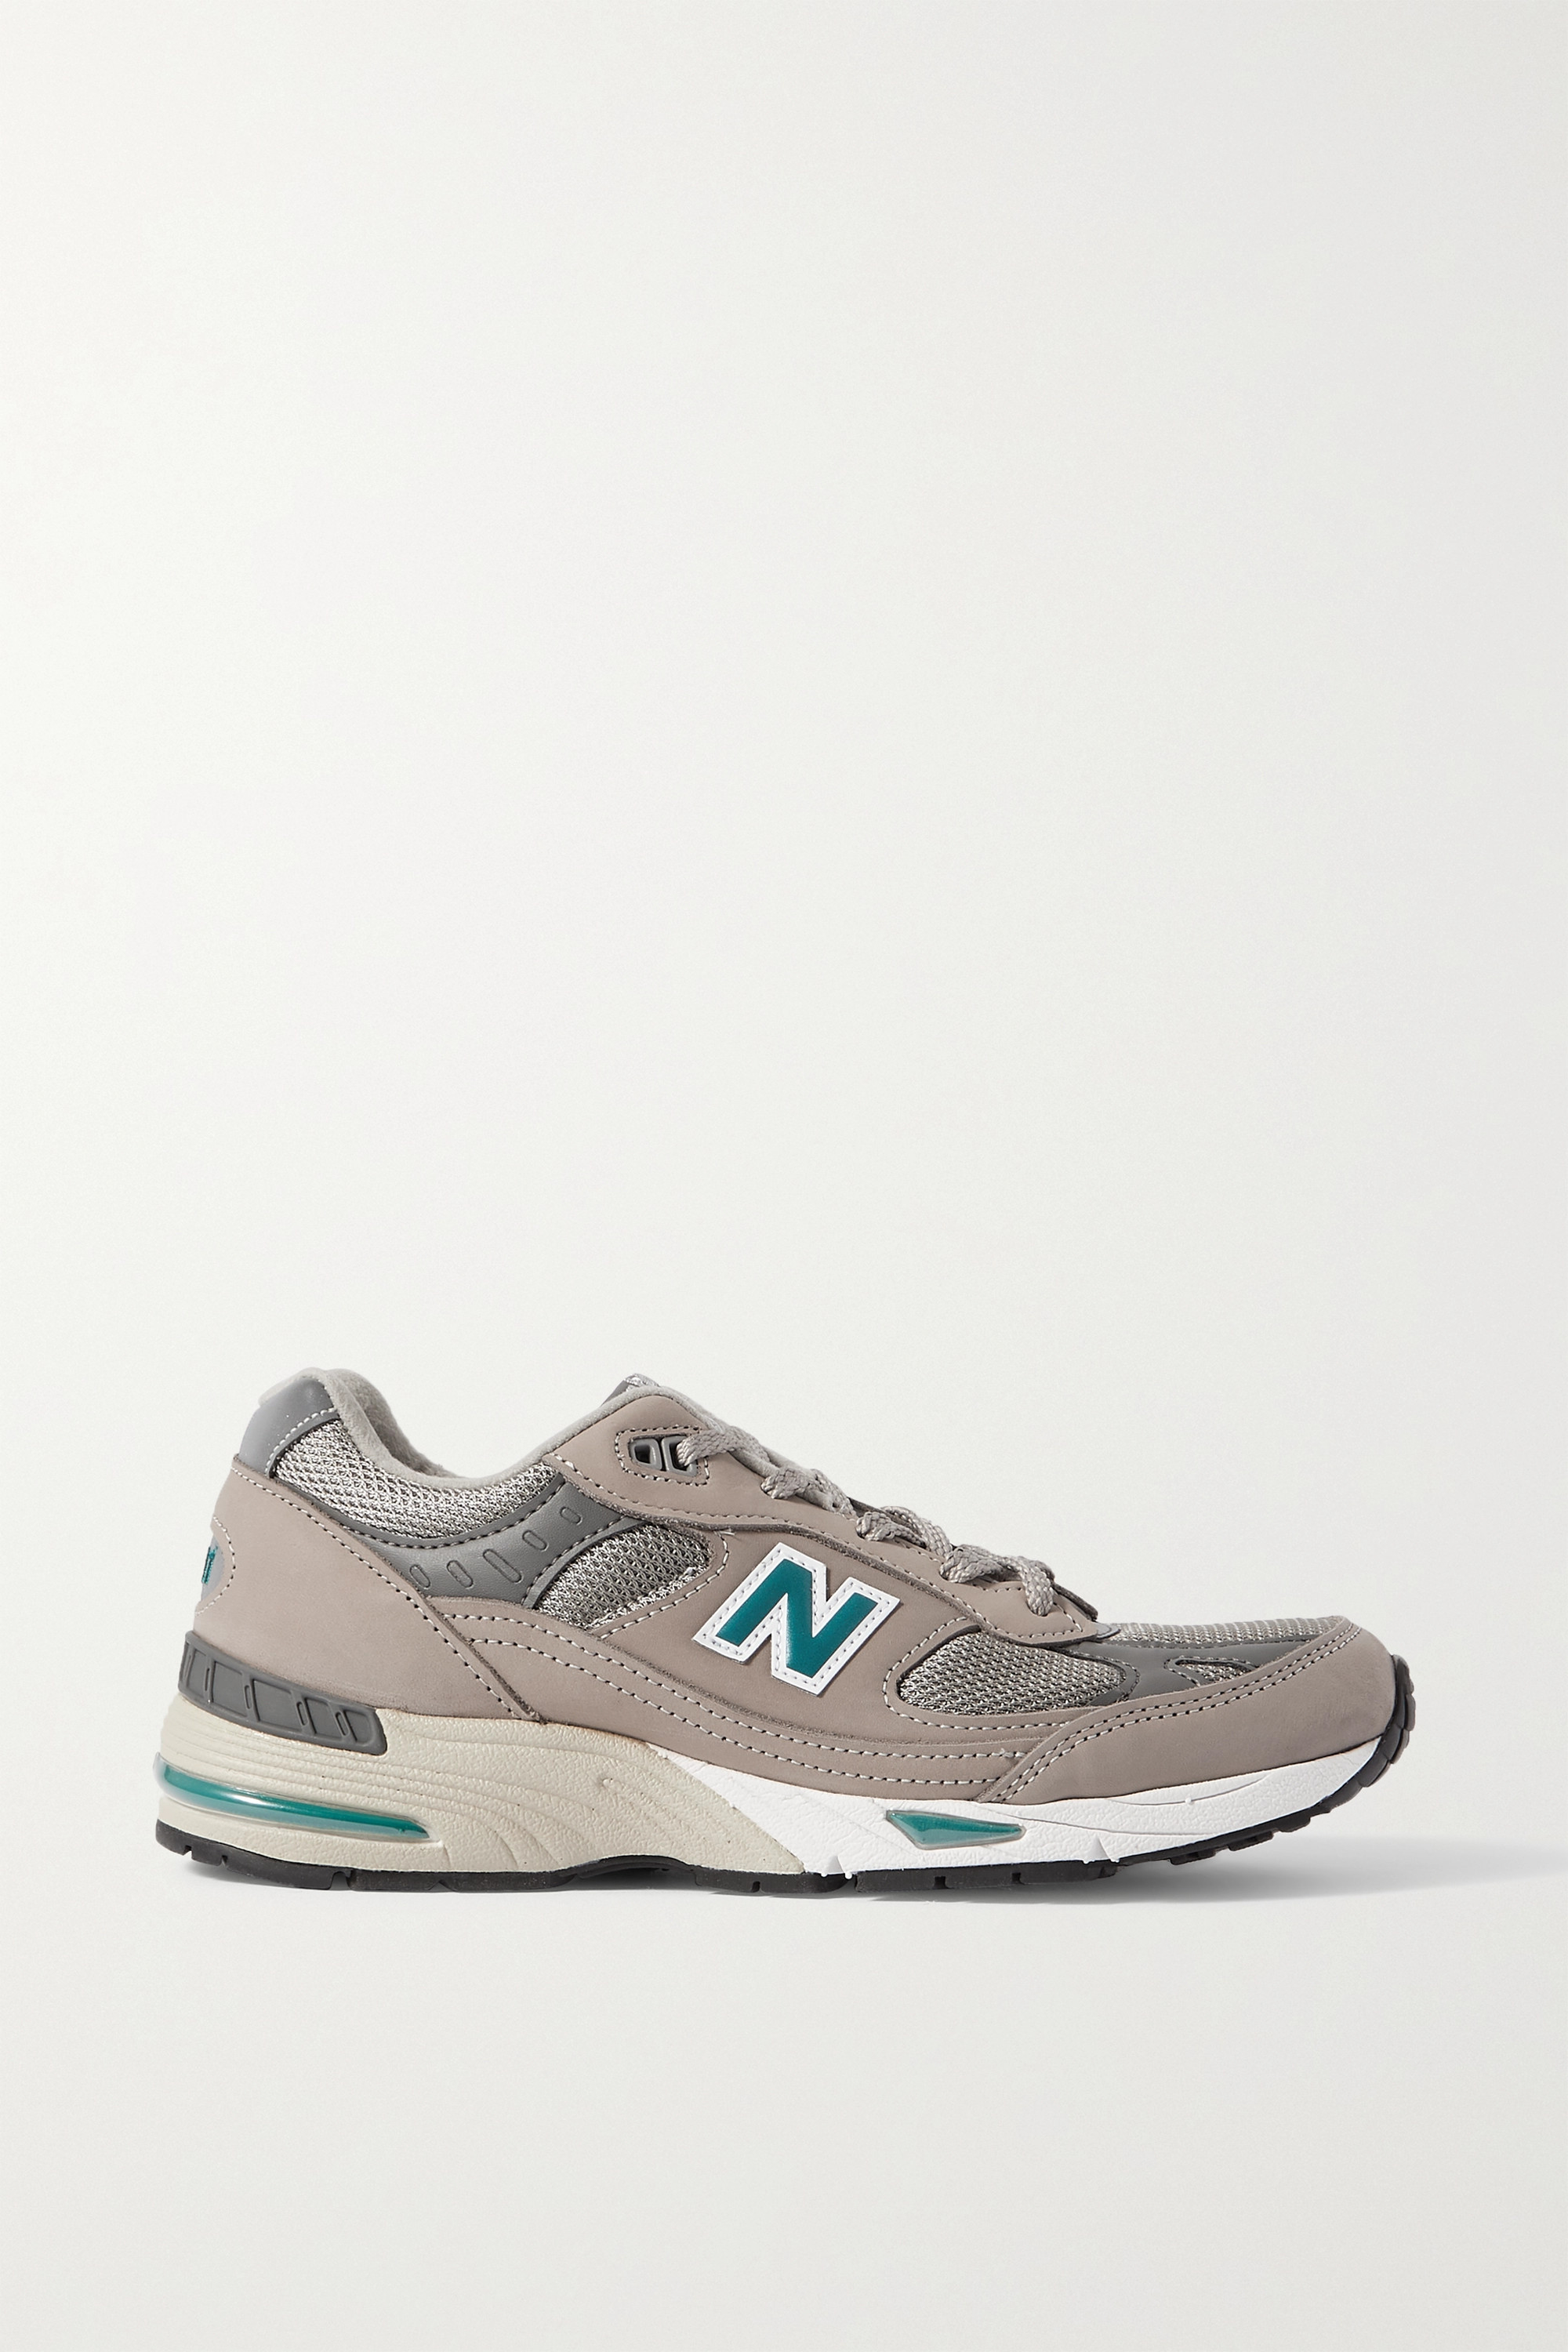 NEW BALANCE 991 nubuck, mesh and leather sneakers